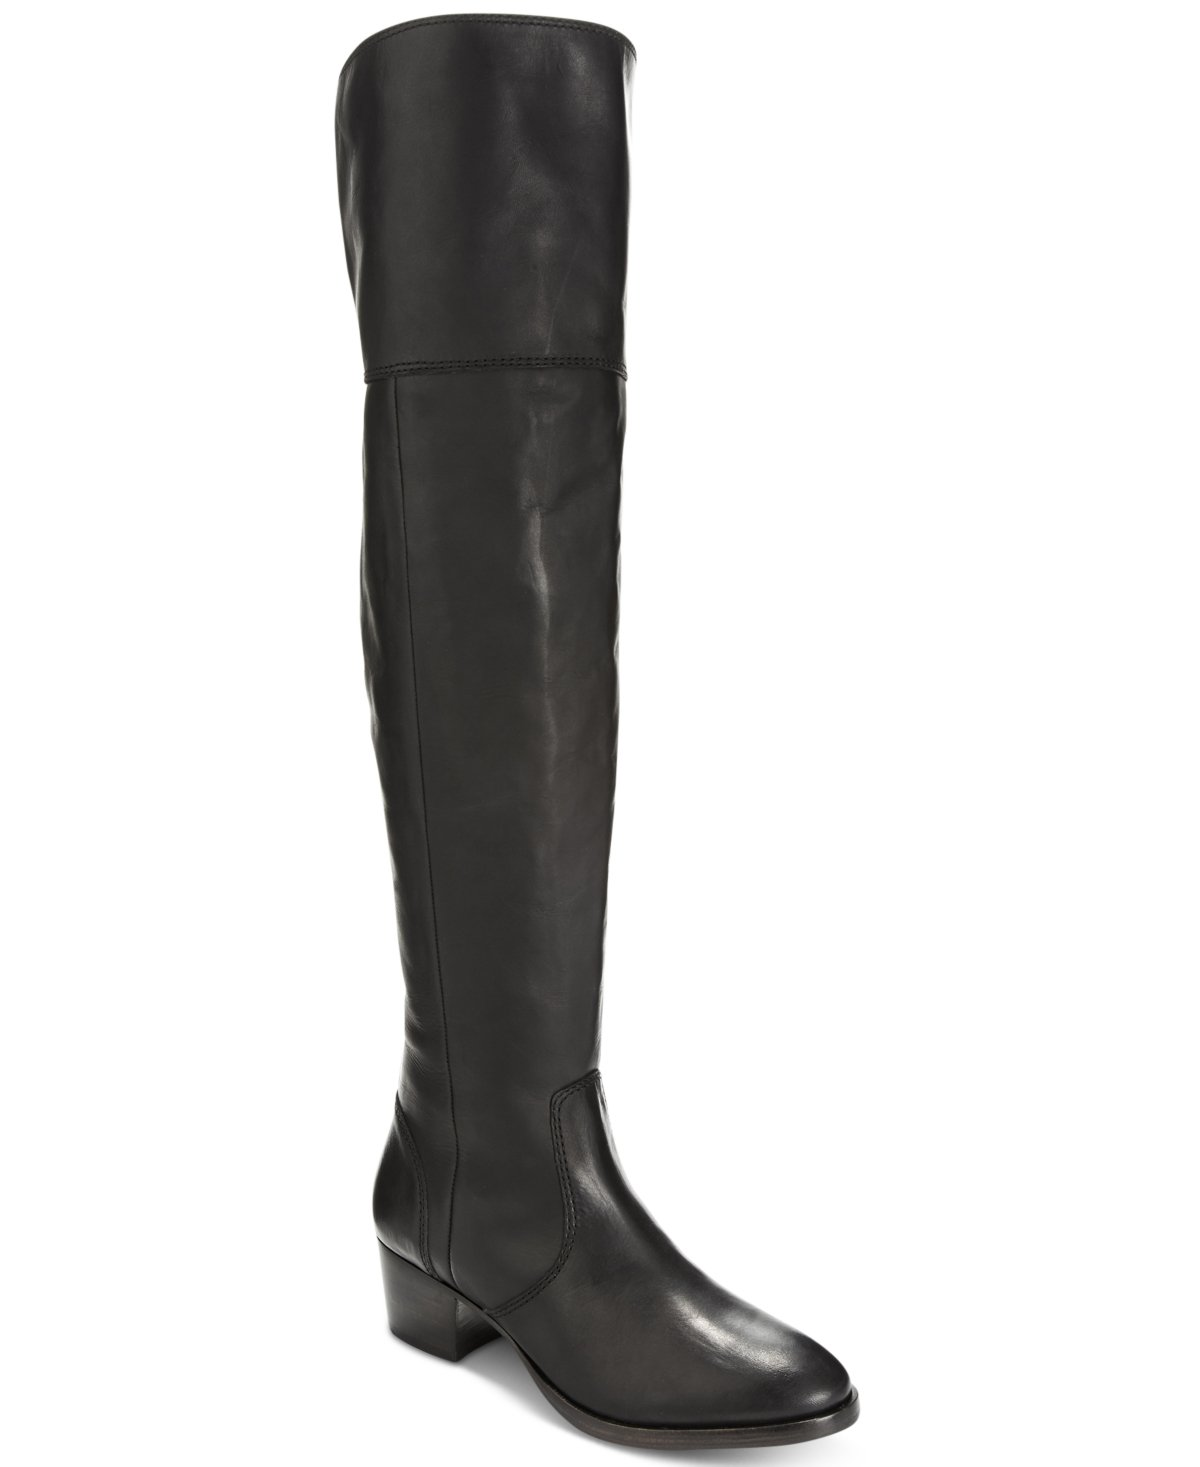 FRYE Women's Clara OTK Leather Slouch Boot B018YLY58E 5.5 M US|Black Smooth Vintage Leather